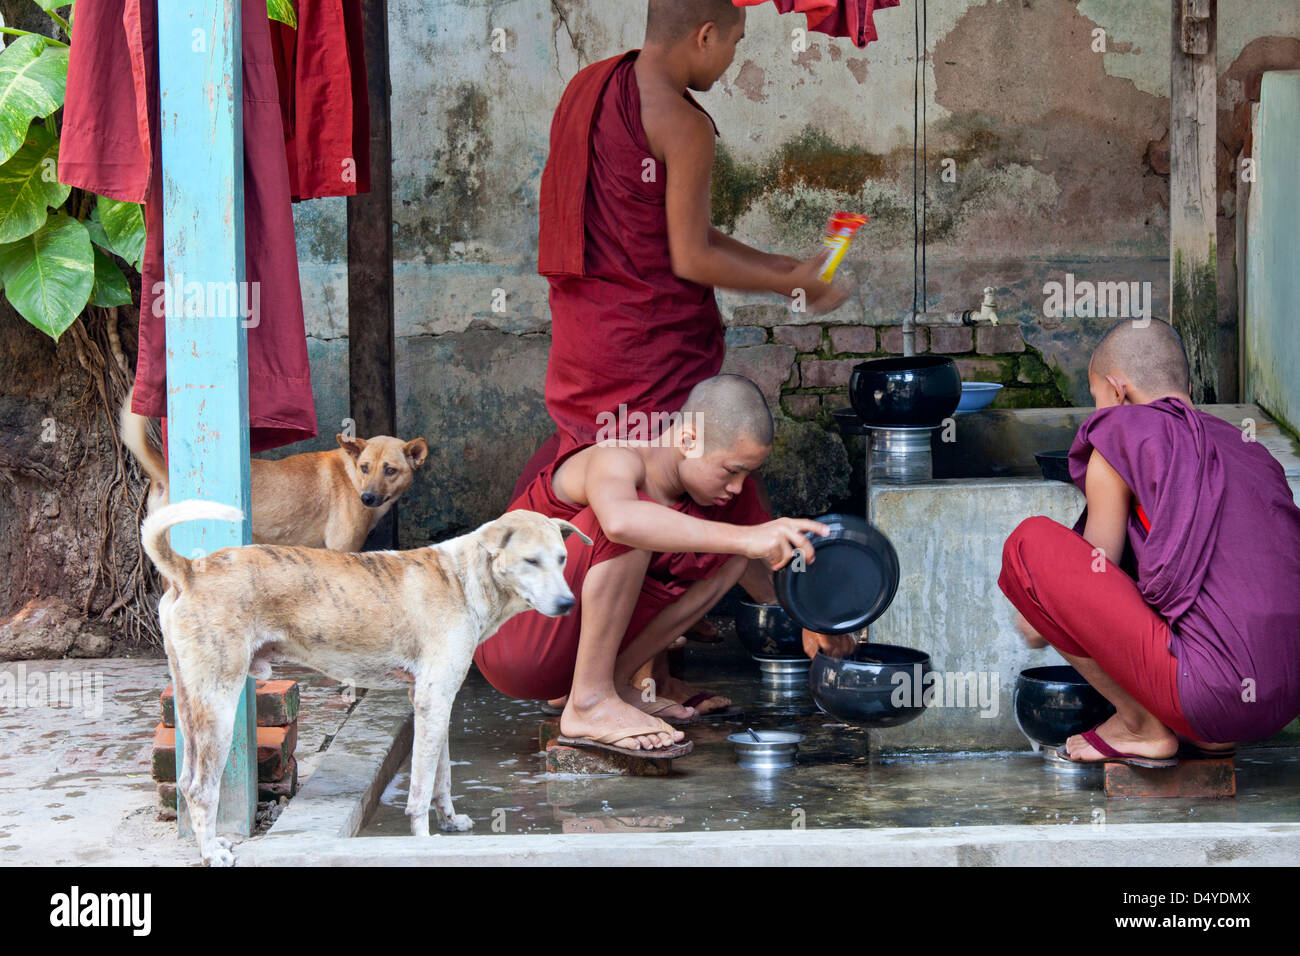 At a monastery in Mandalay dogs patiently wait, with tails wagging, for handouts as monks clean up after a meal, - Stock Image